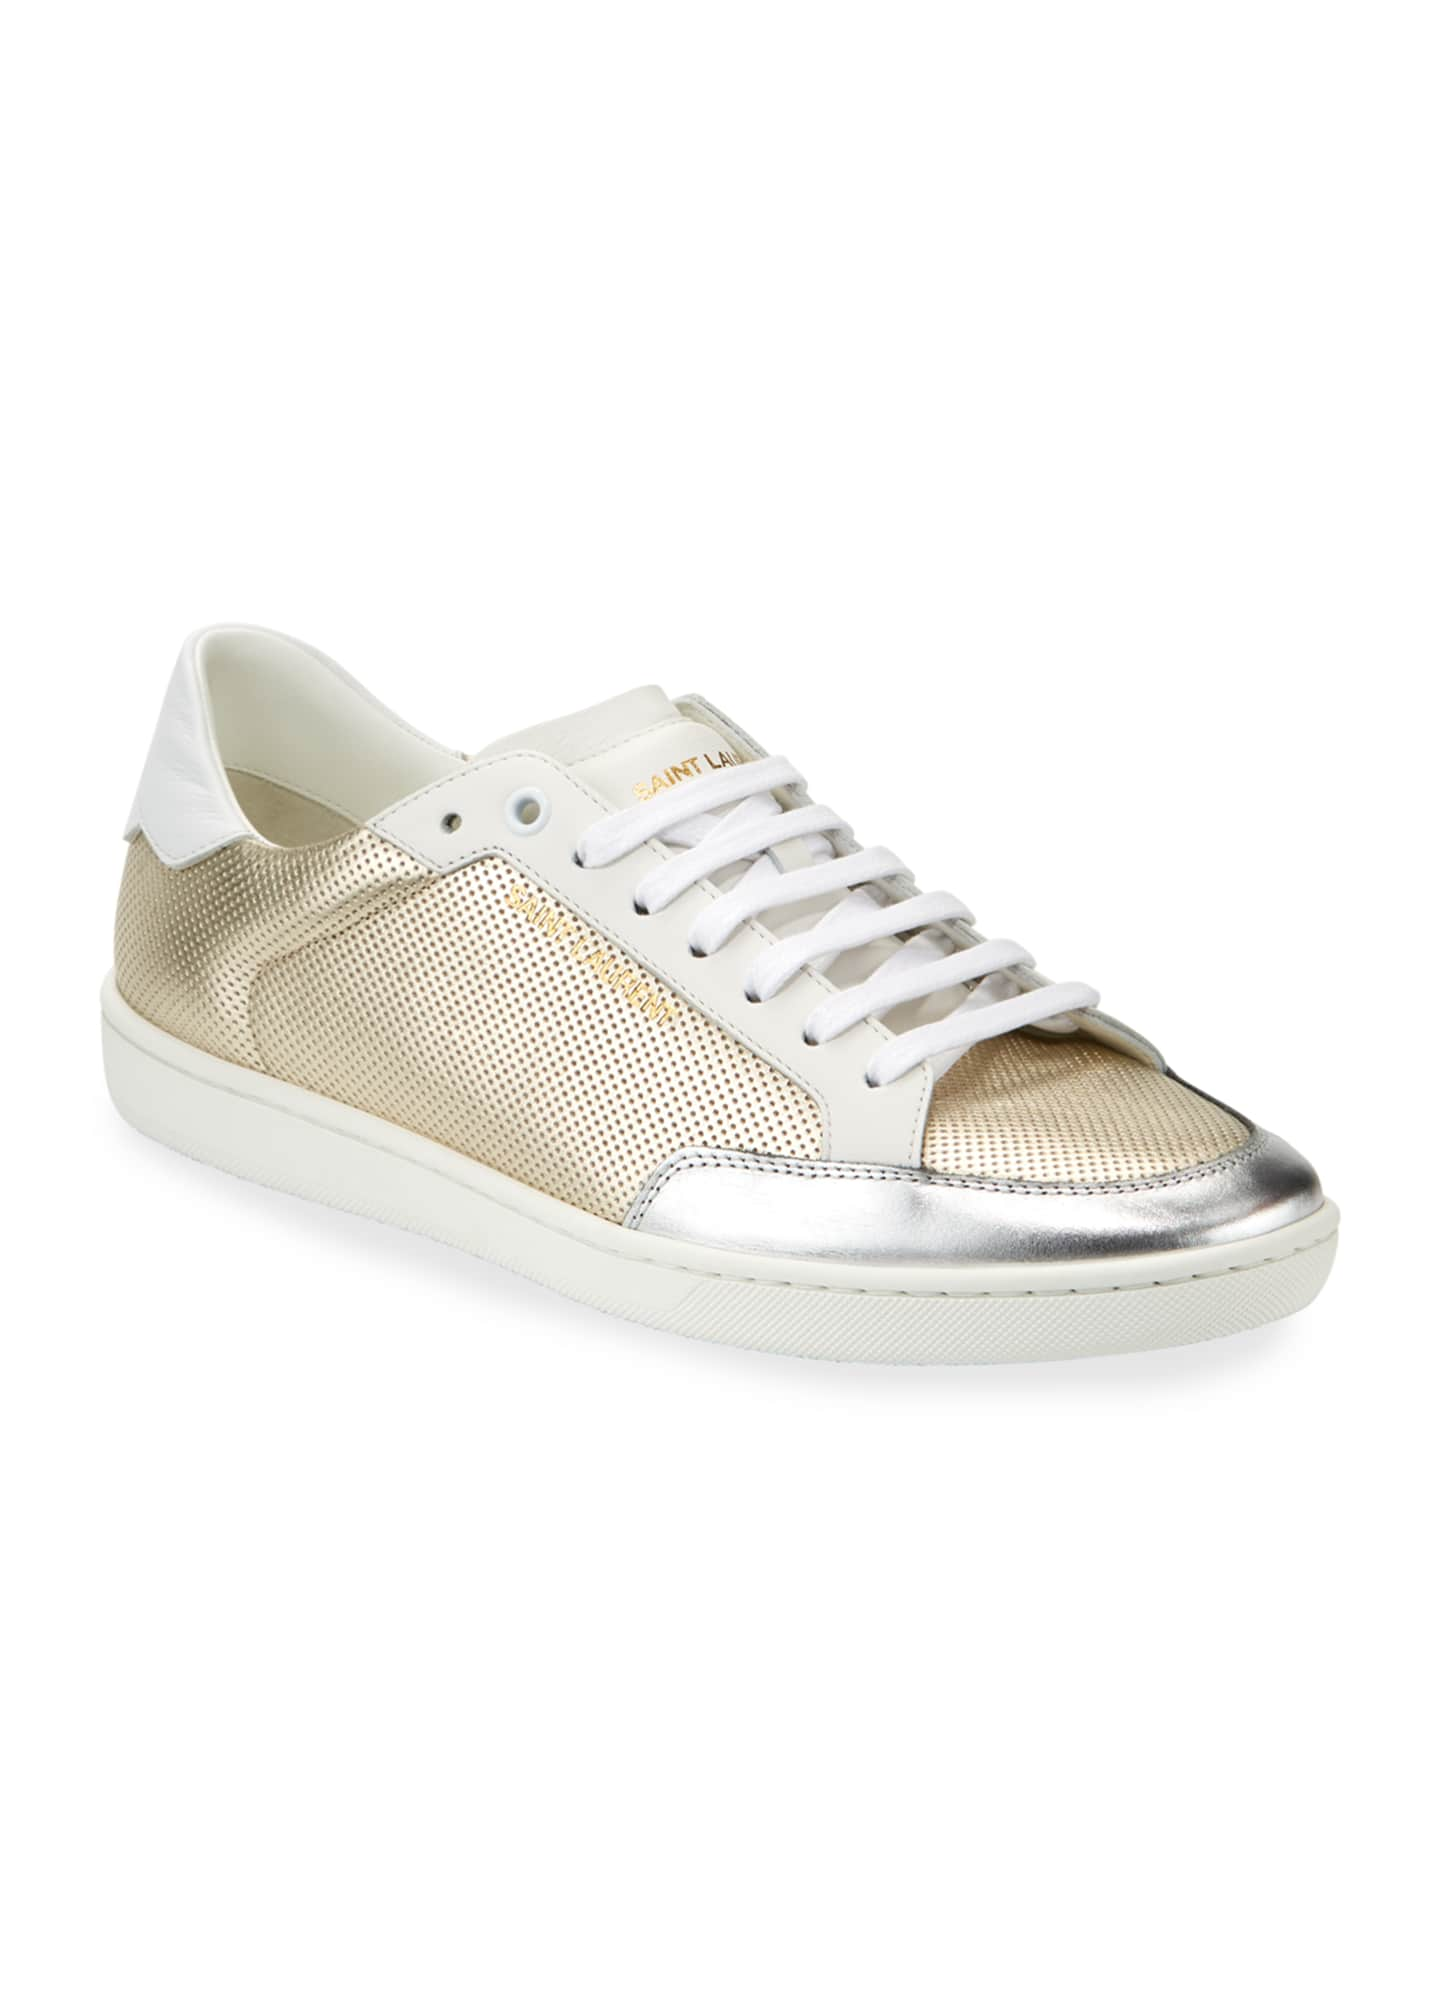 Image 2 of 4: Men's Perforated Metallic Leather Low-Top Sneakers